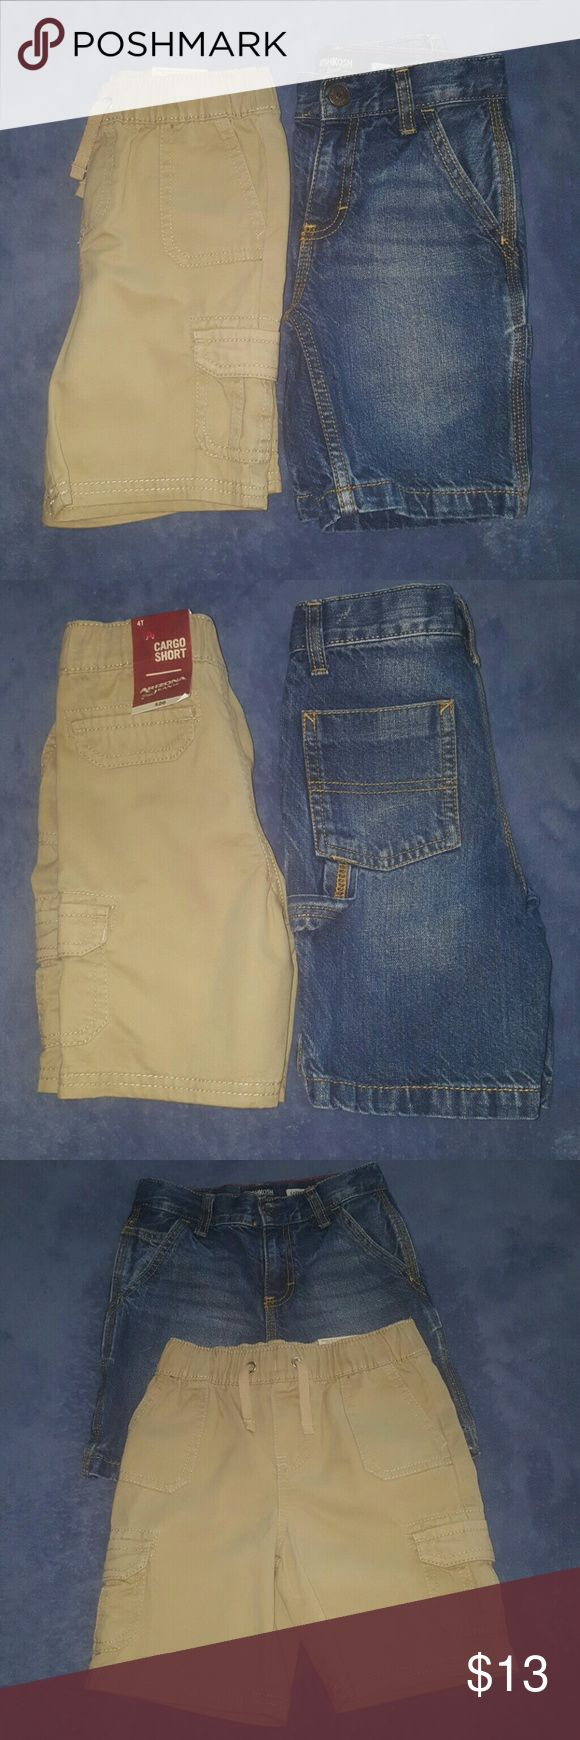 Denim & Khaki Shorts Size 4 & 5 Excellent Denim Oshkosh Carpenter shorts size 5 in Excellent condition. Adjustable waist. Dark wash color. New with tags Arizona Jeans Co.  Khaki Cargo shorts w/ elastic waist and drawstring size 4. The khakis are great for school uniforms. Really no difference in the size of the waist considering 1 pair is a size 4 & the other a size 5. Your son will be able to wear both I am sure. Oshkosh & Arizona Jeans Co Bottoms Shorts